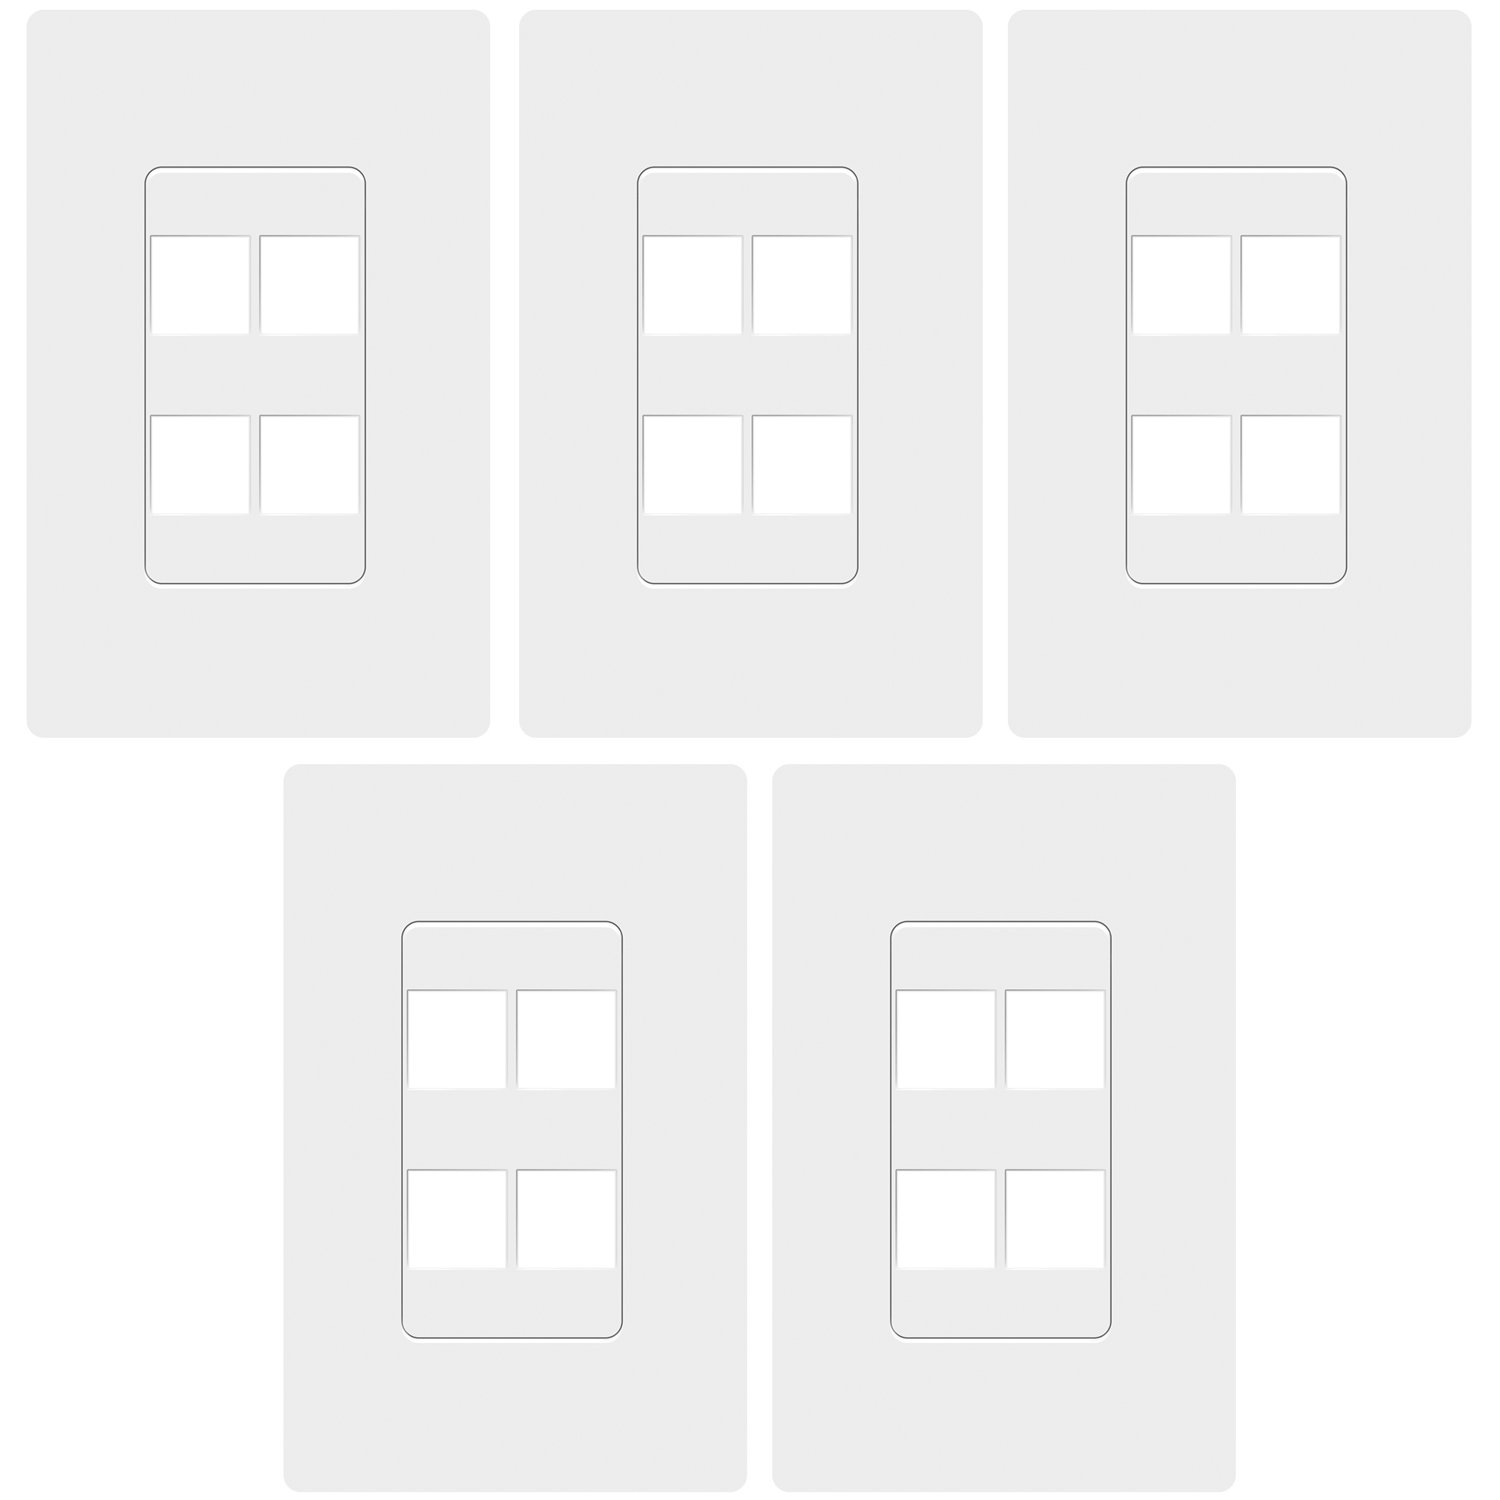 TOPGREENER SI8874 (5 Pack) 4 Port Keystone Wall Plate, Keystone Jack Wall Plate, Wall Plate Screwless, Cat5e Keystone Jack Cat6 Compatible, Child Safe, Unbreakable, White